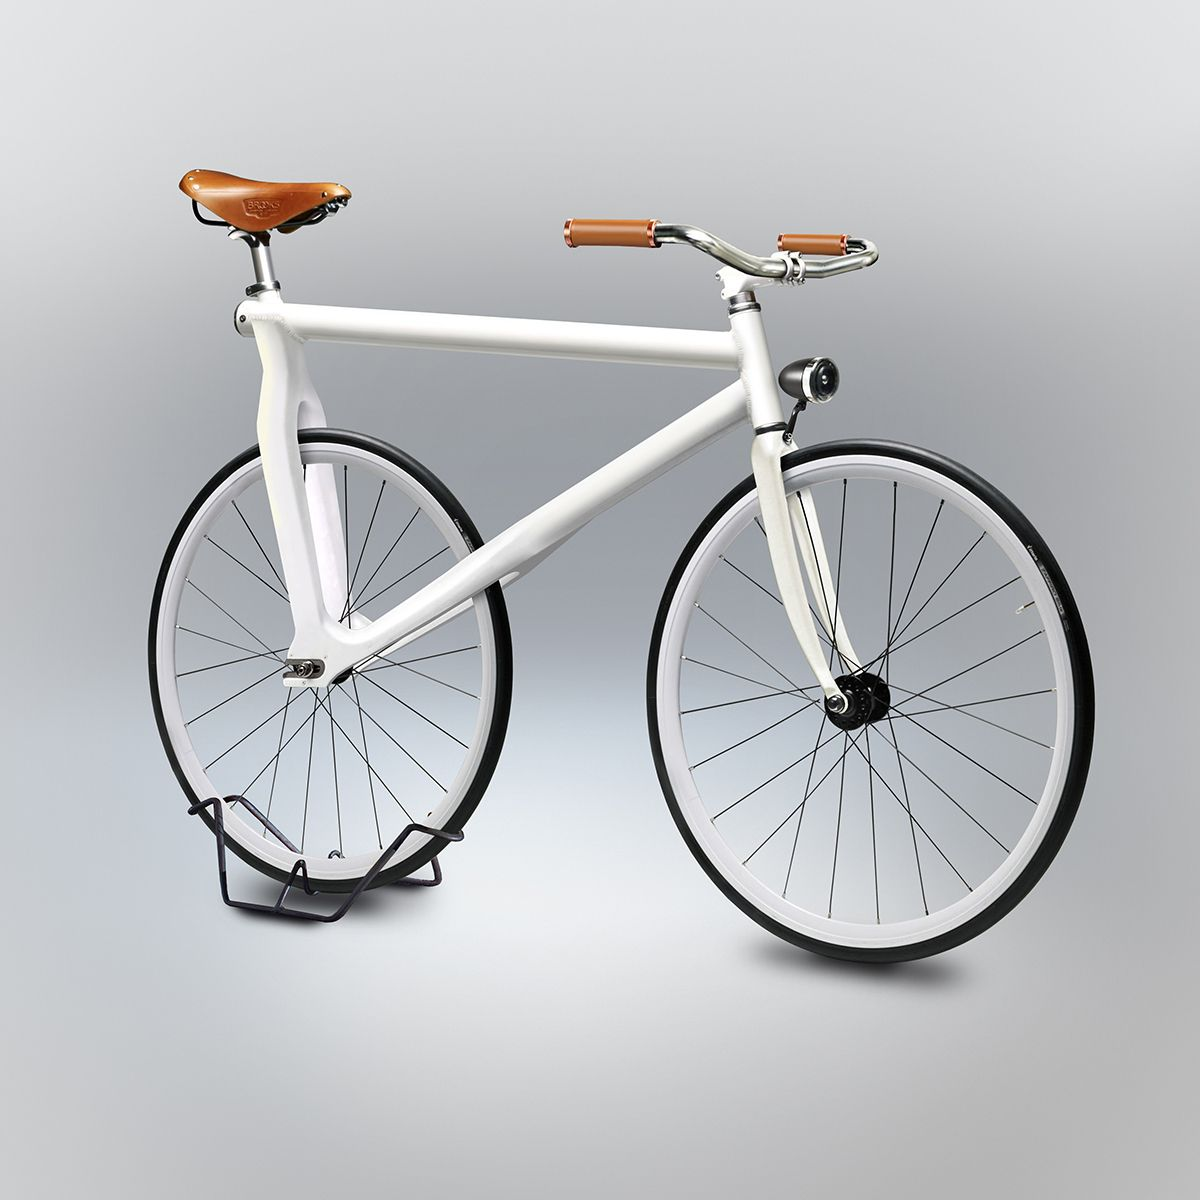 If You Were Asked To Draw A Bicycle Right Now From Memory Without